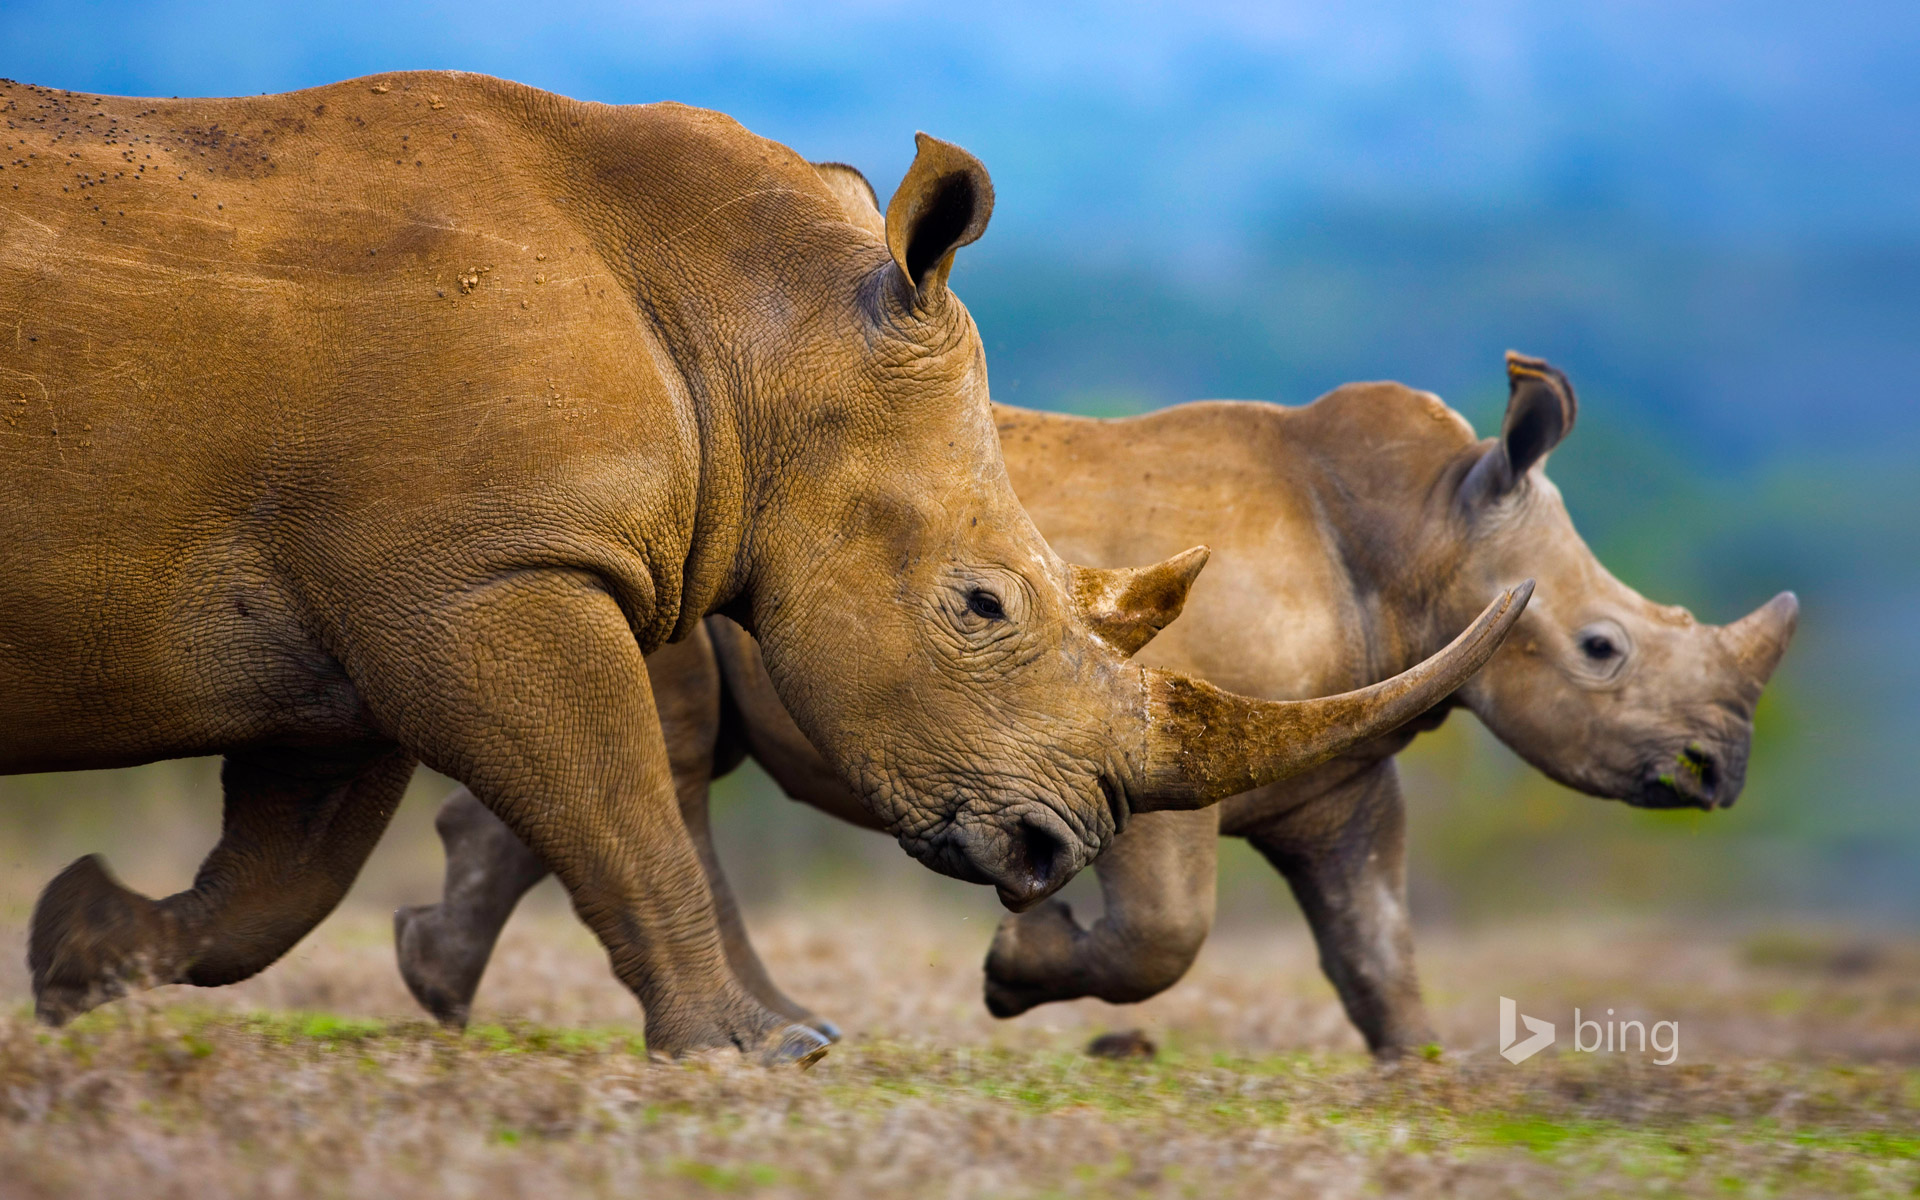 Southern white rhinoceros mother and calf